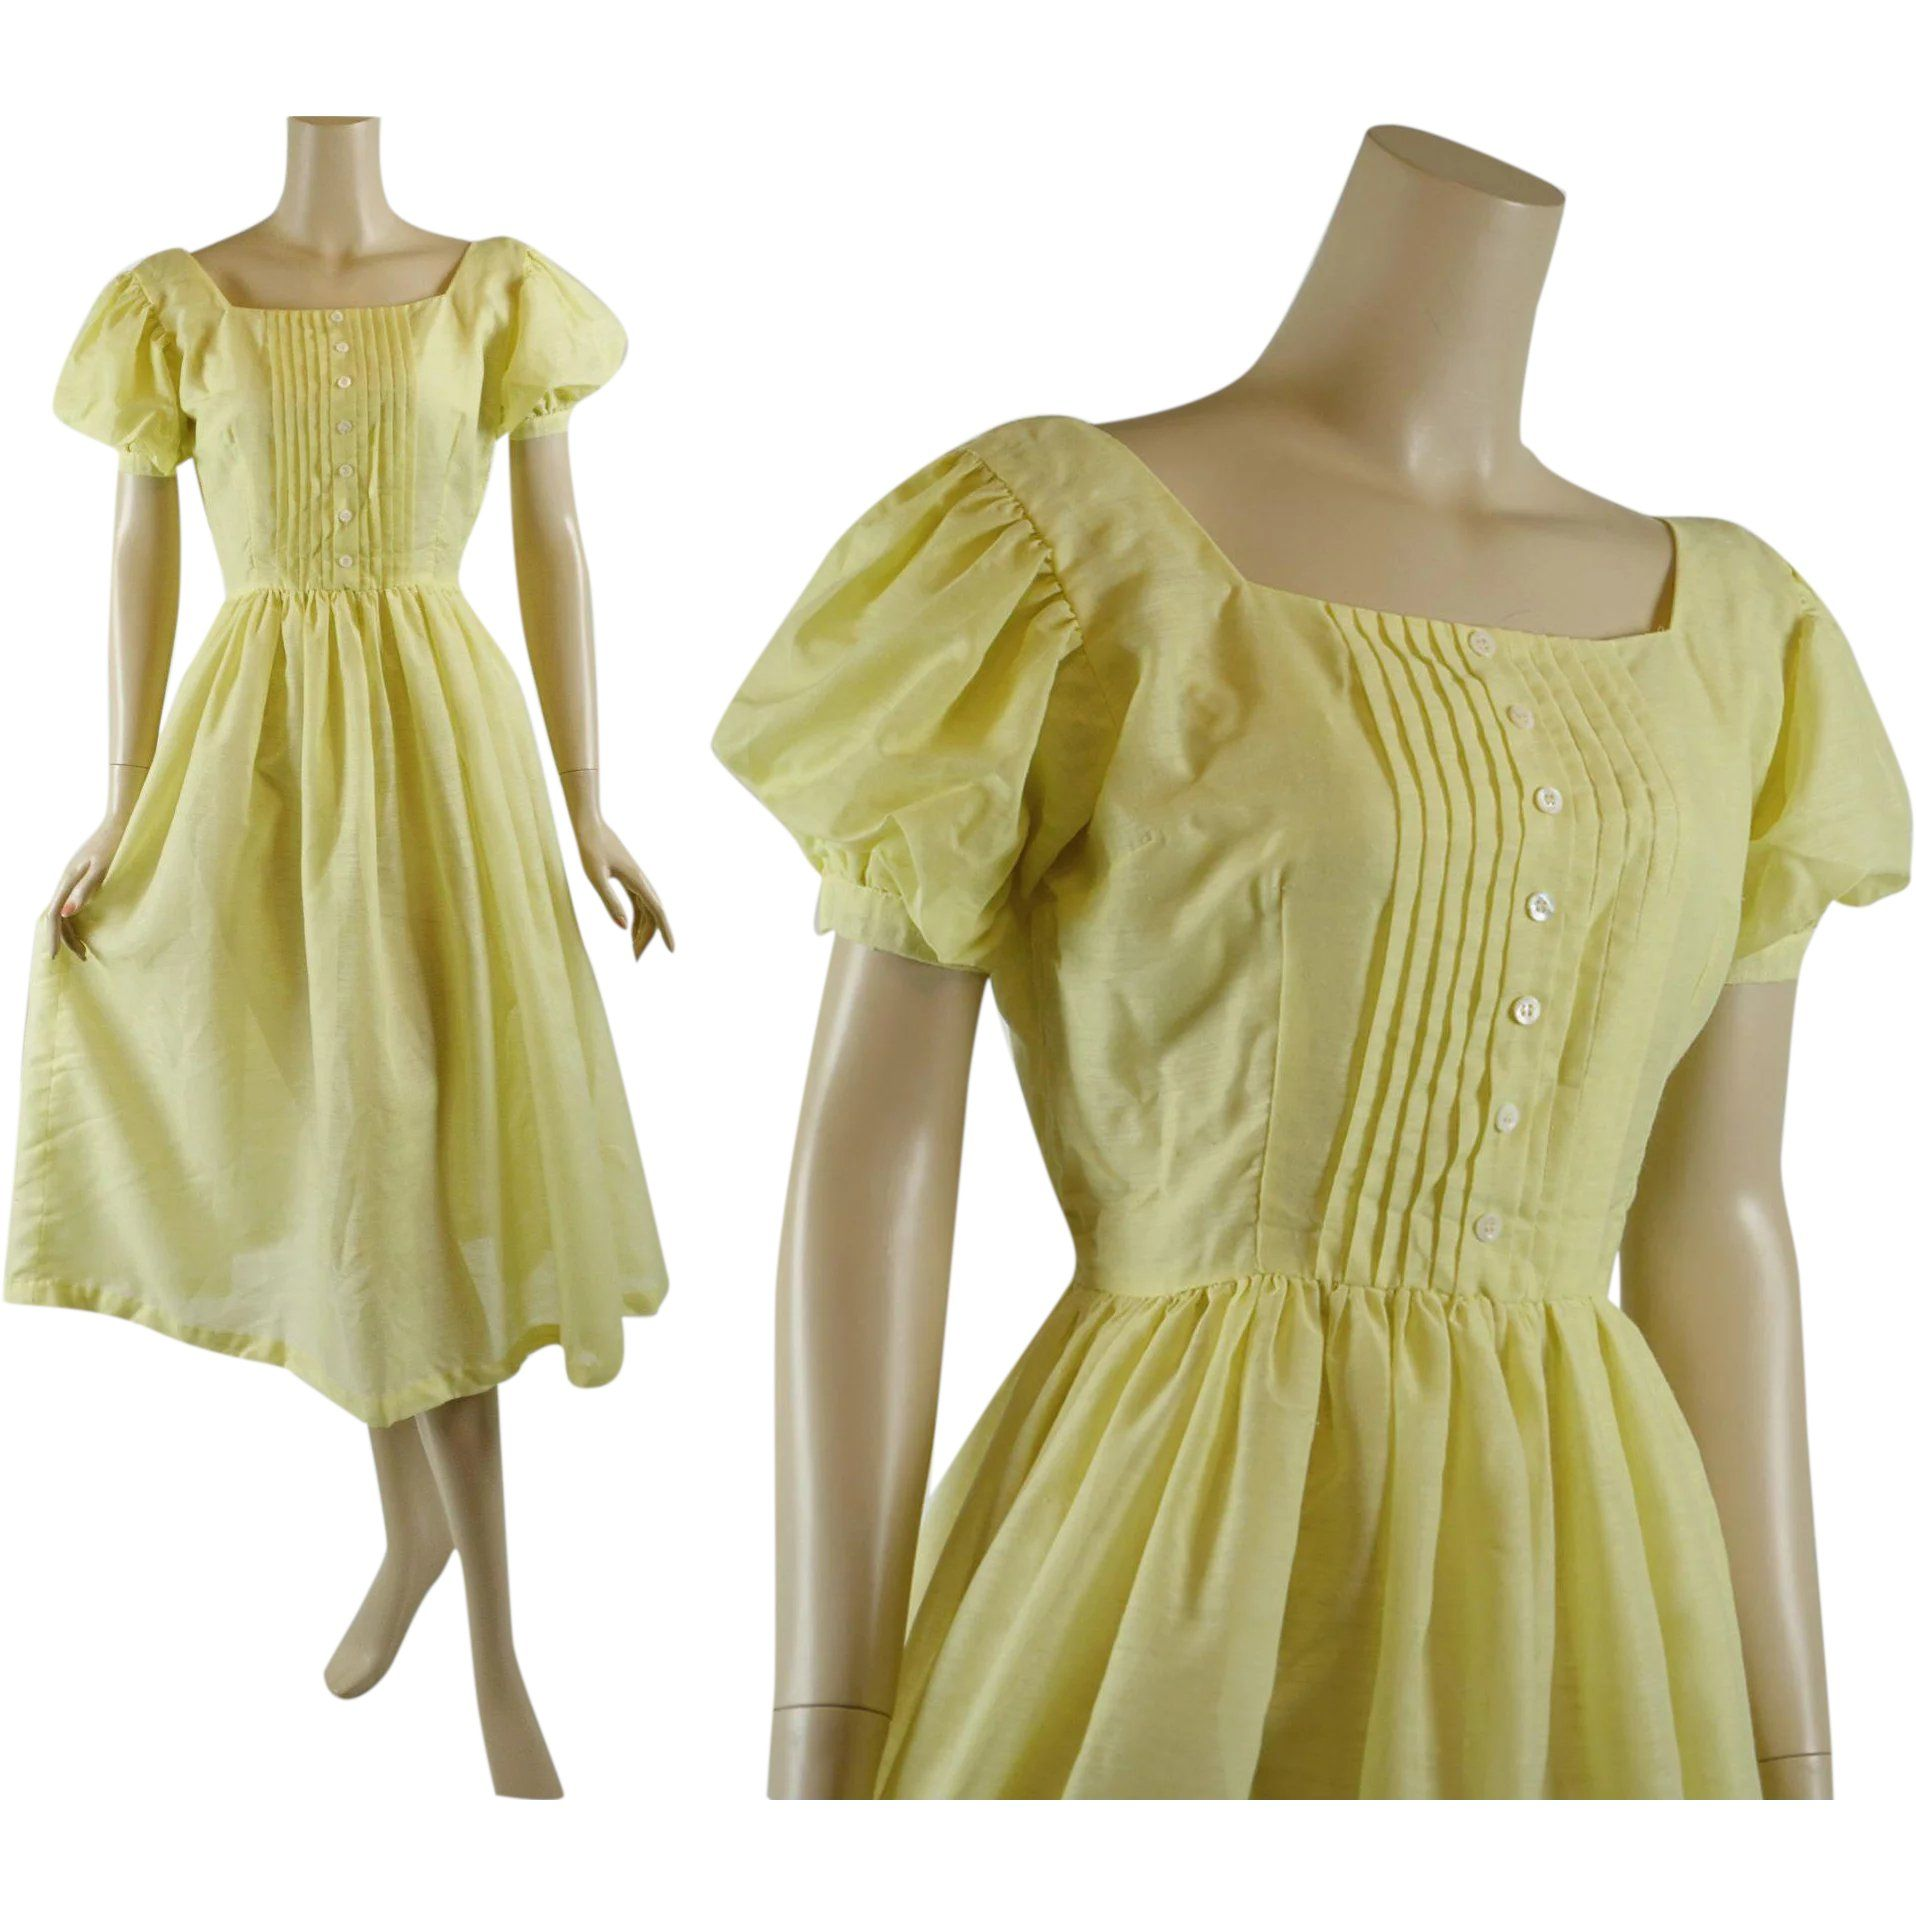 1950s 1960s Vintage Dress Bright Yellow Full Skirt Organdy With Puff Sleeves B38 W27 In 2020 Vintage Dresses 1960s 1960s Dresses Yellow Dress Summer